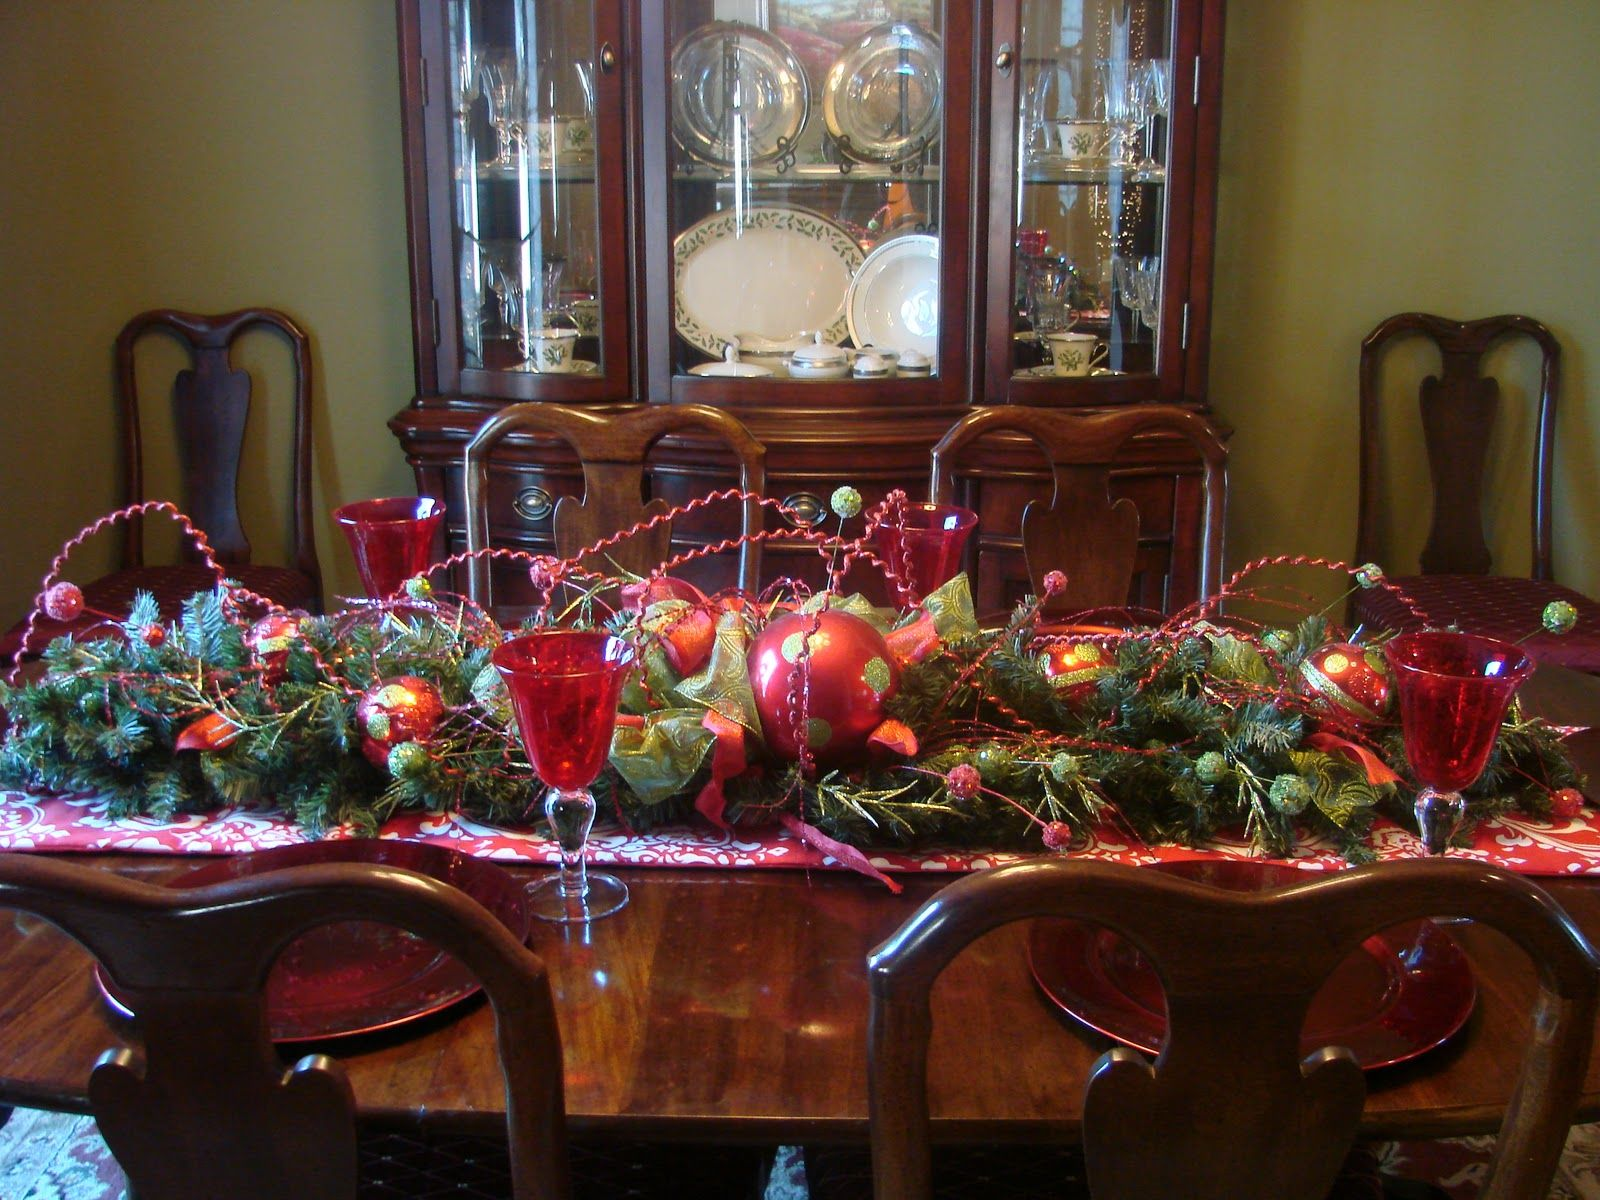 Decoration Awesome Ideas Fantastic Christmas Dining Table Centrepieces With Fruits Bouquet Also Wooden Curio In Vintage Room